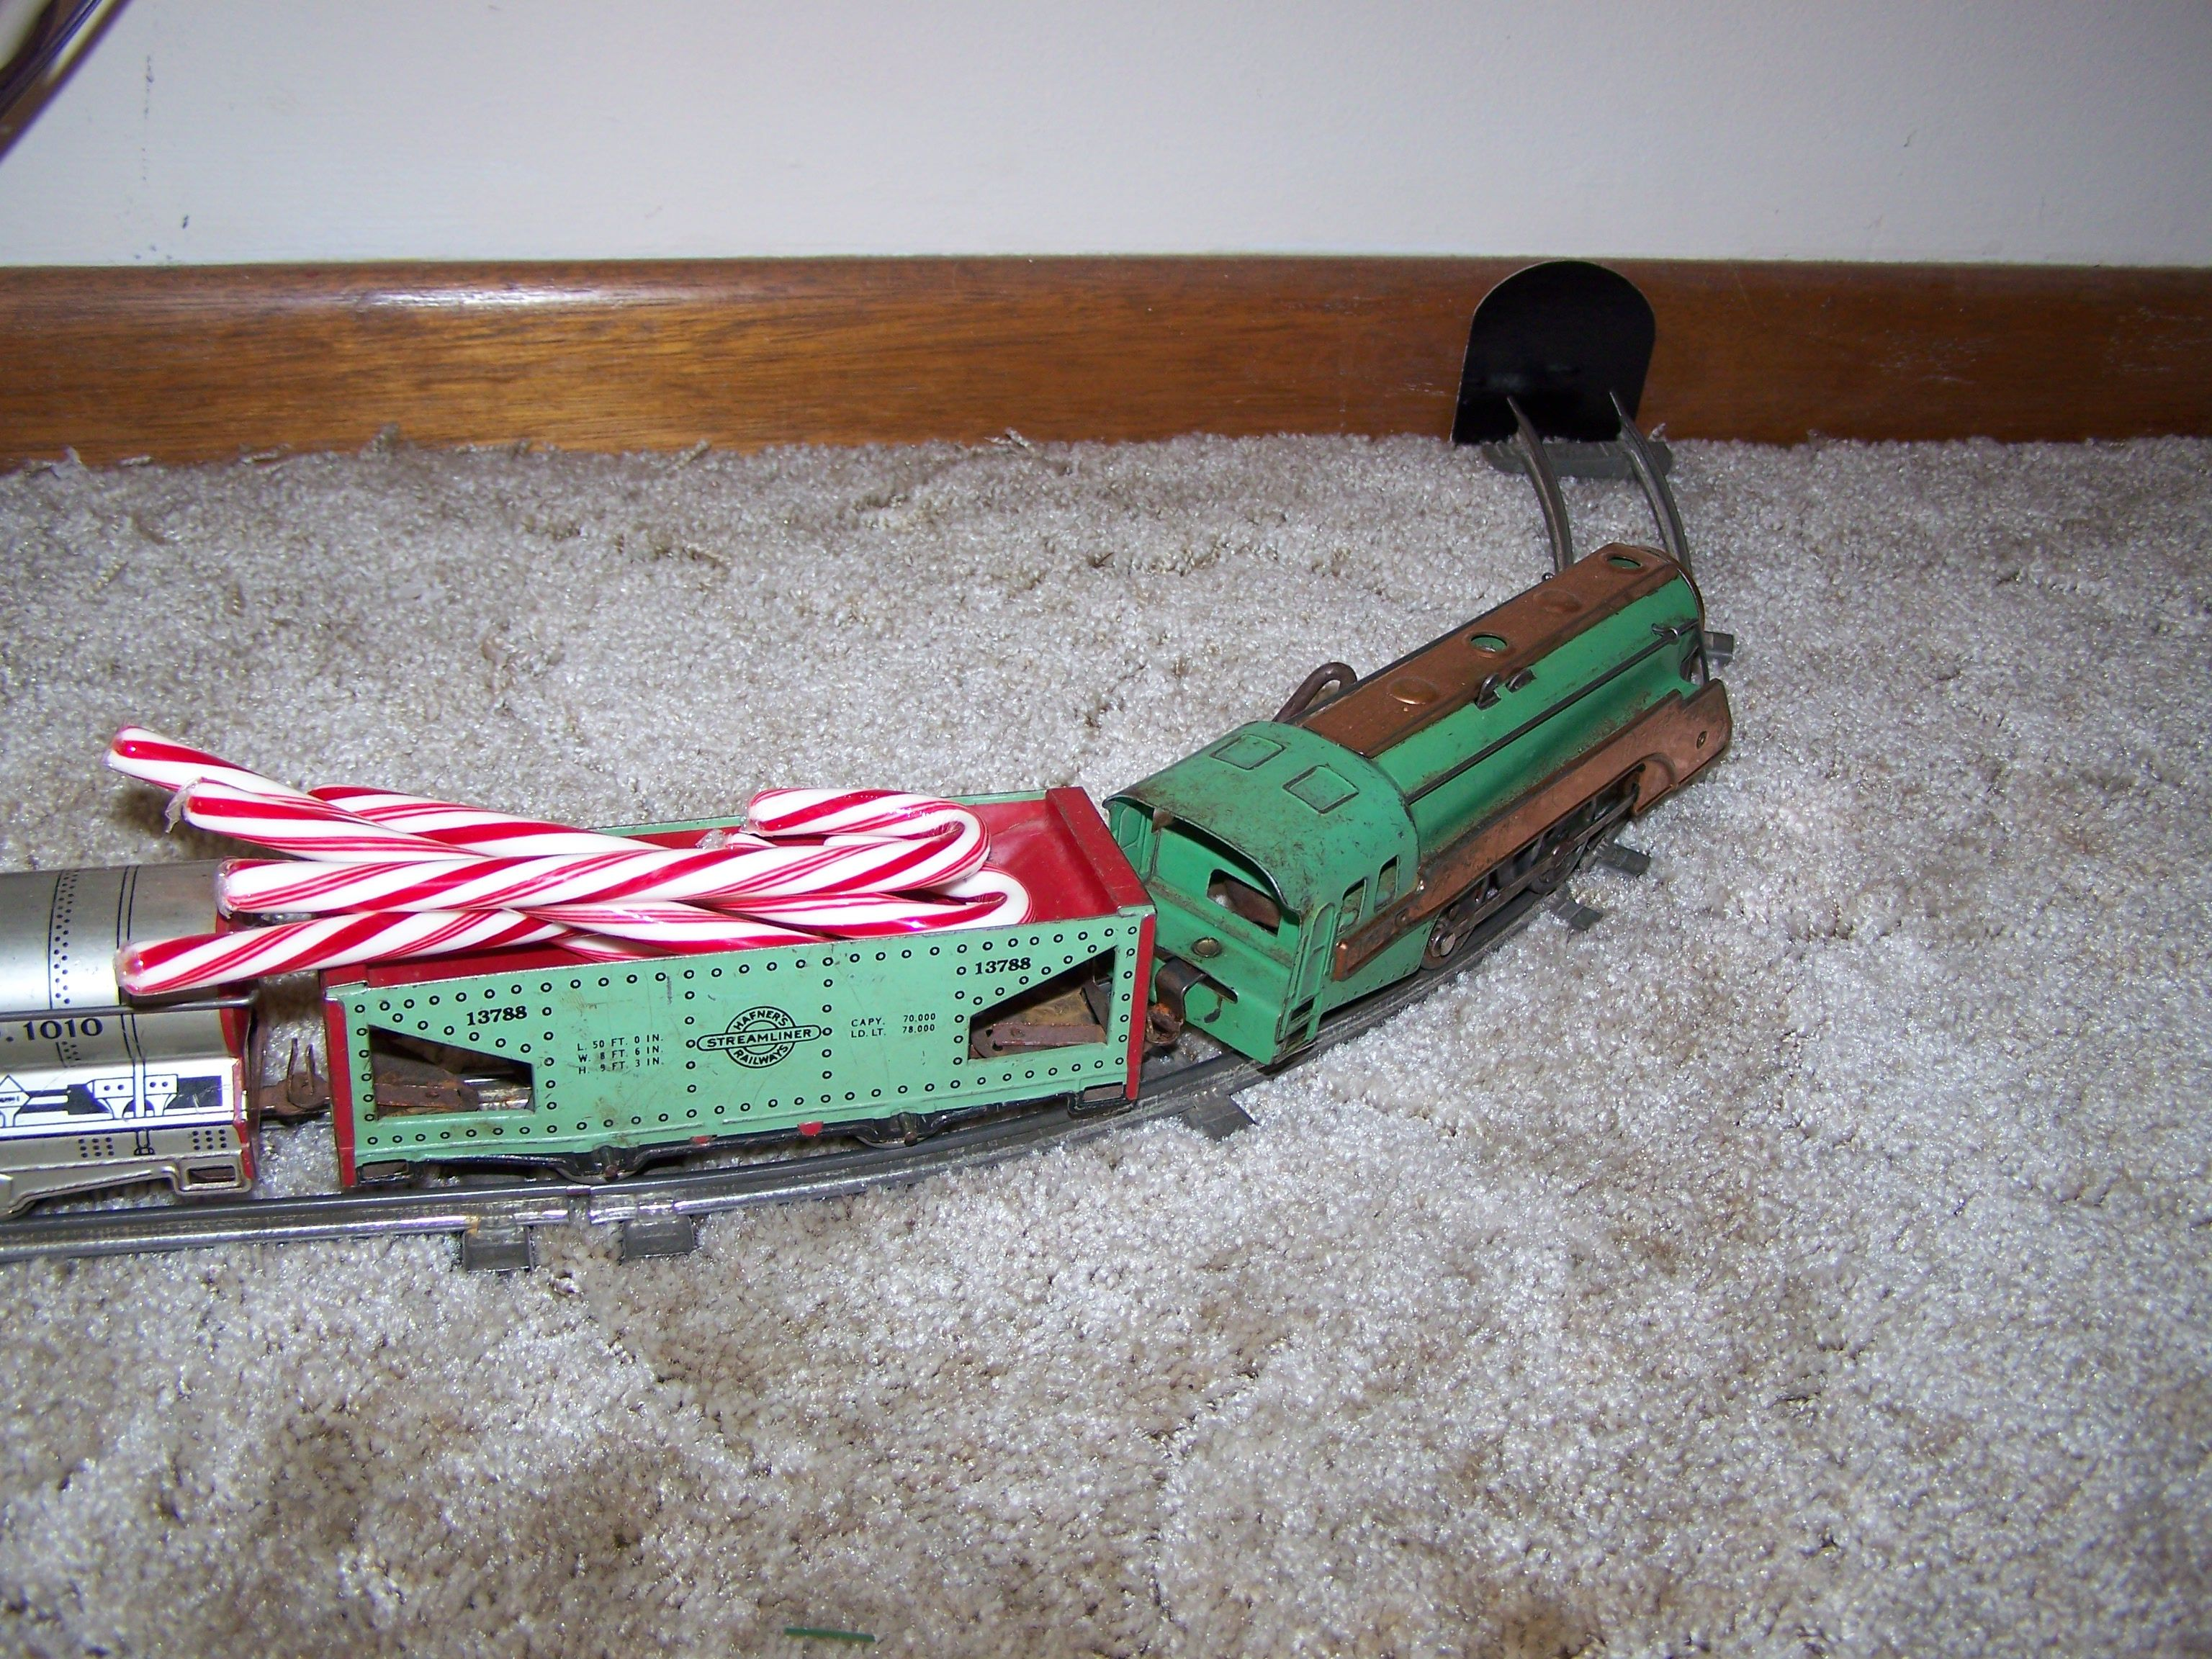 My Mom's neat idea to display the Christmas train without taking up a lot of space. She made the tunnel holes at each end of the semi-circle.